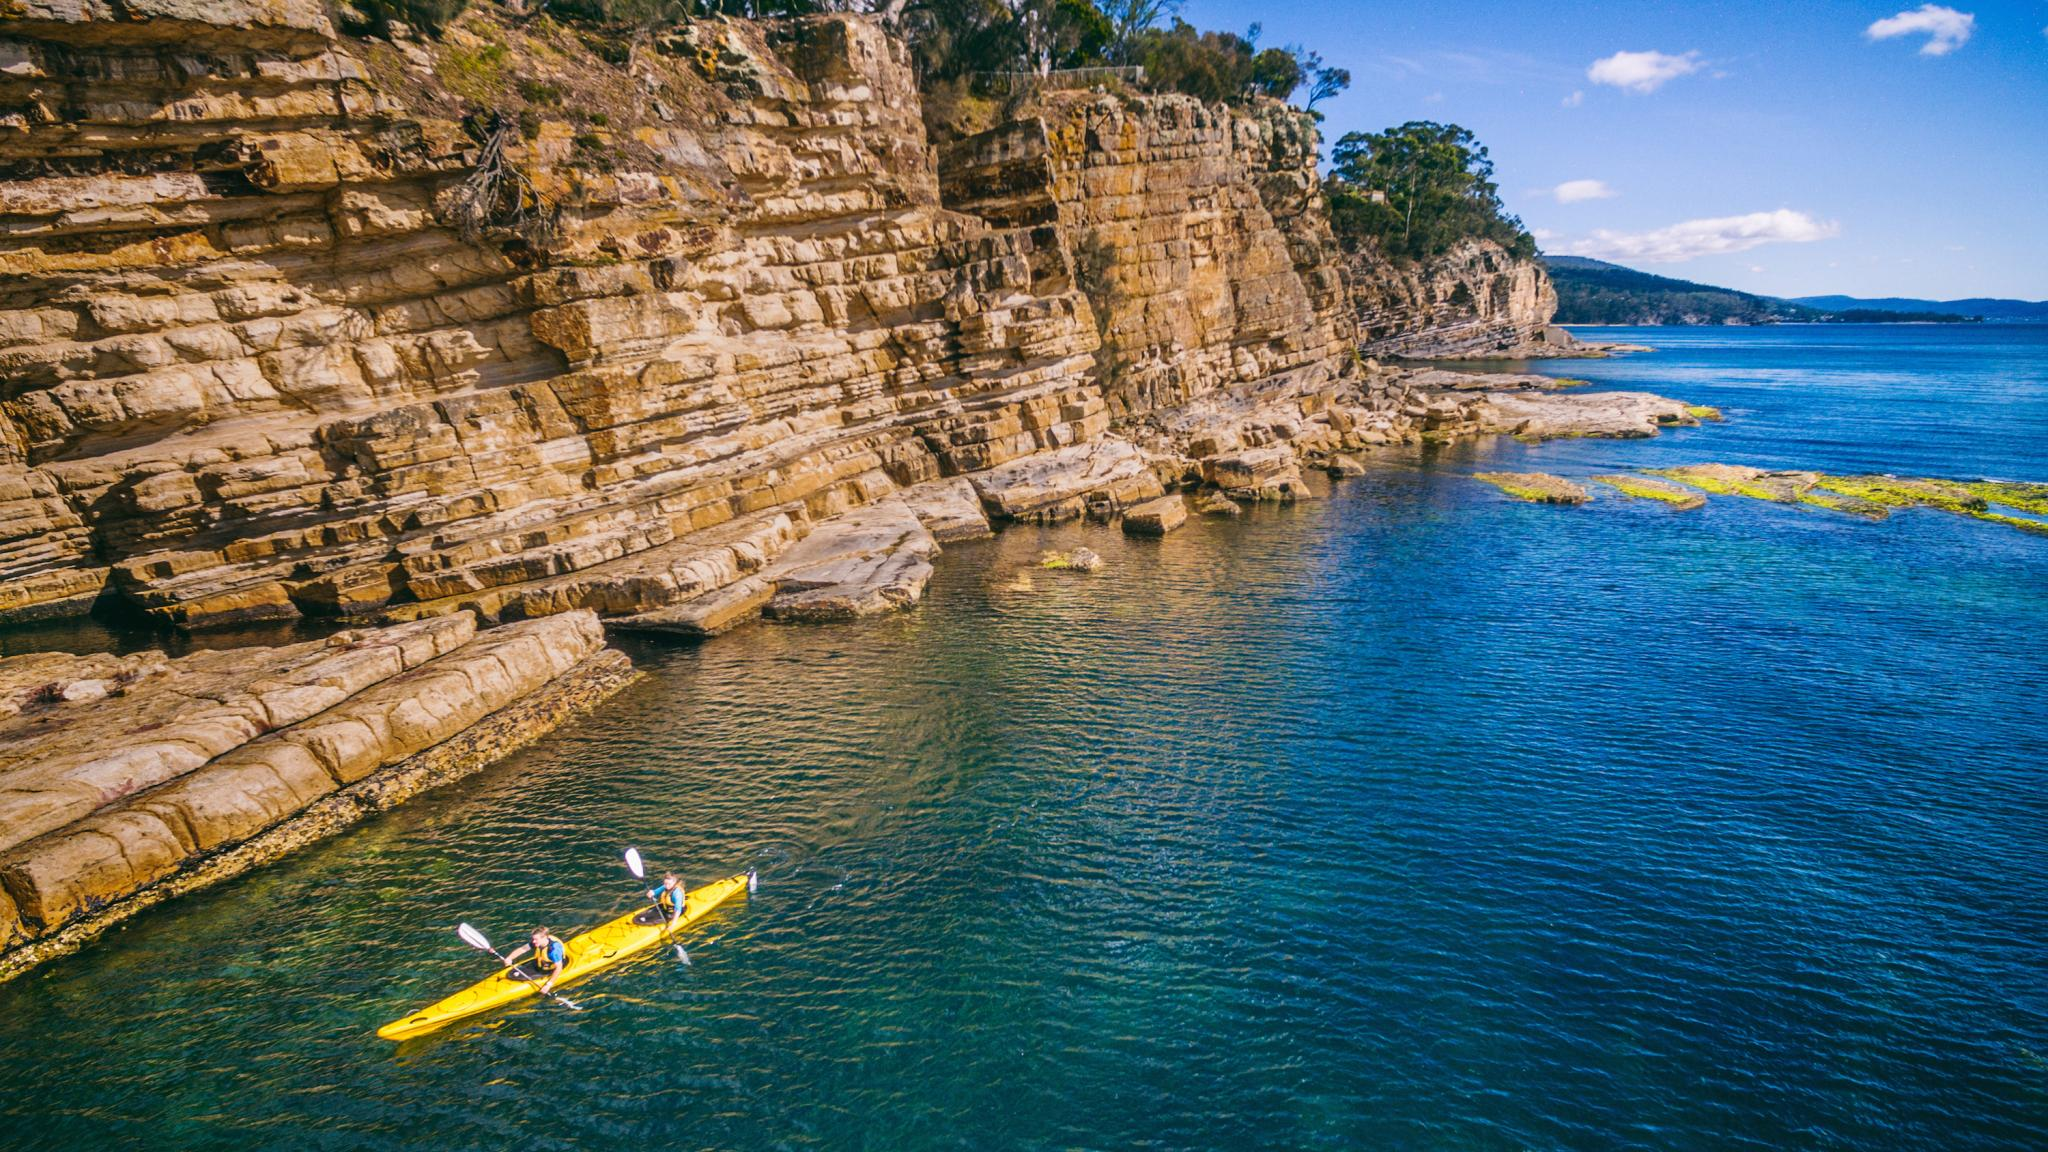 Roaring 40s Kayaking - Kayaking Hobart's Cliffs, Caves and Beaches - Best Adventure Tour in Tasmania